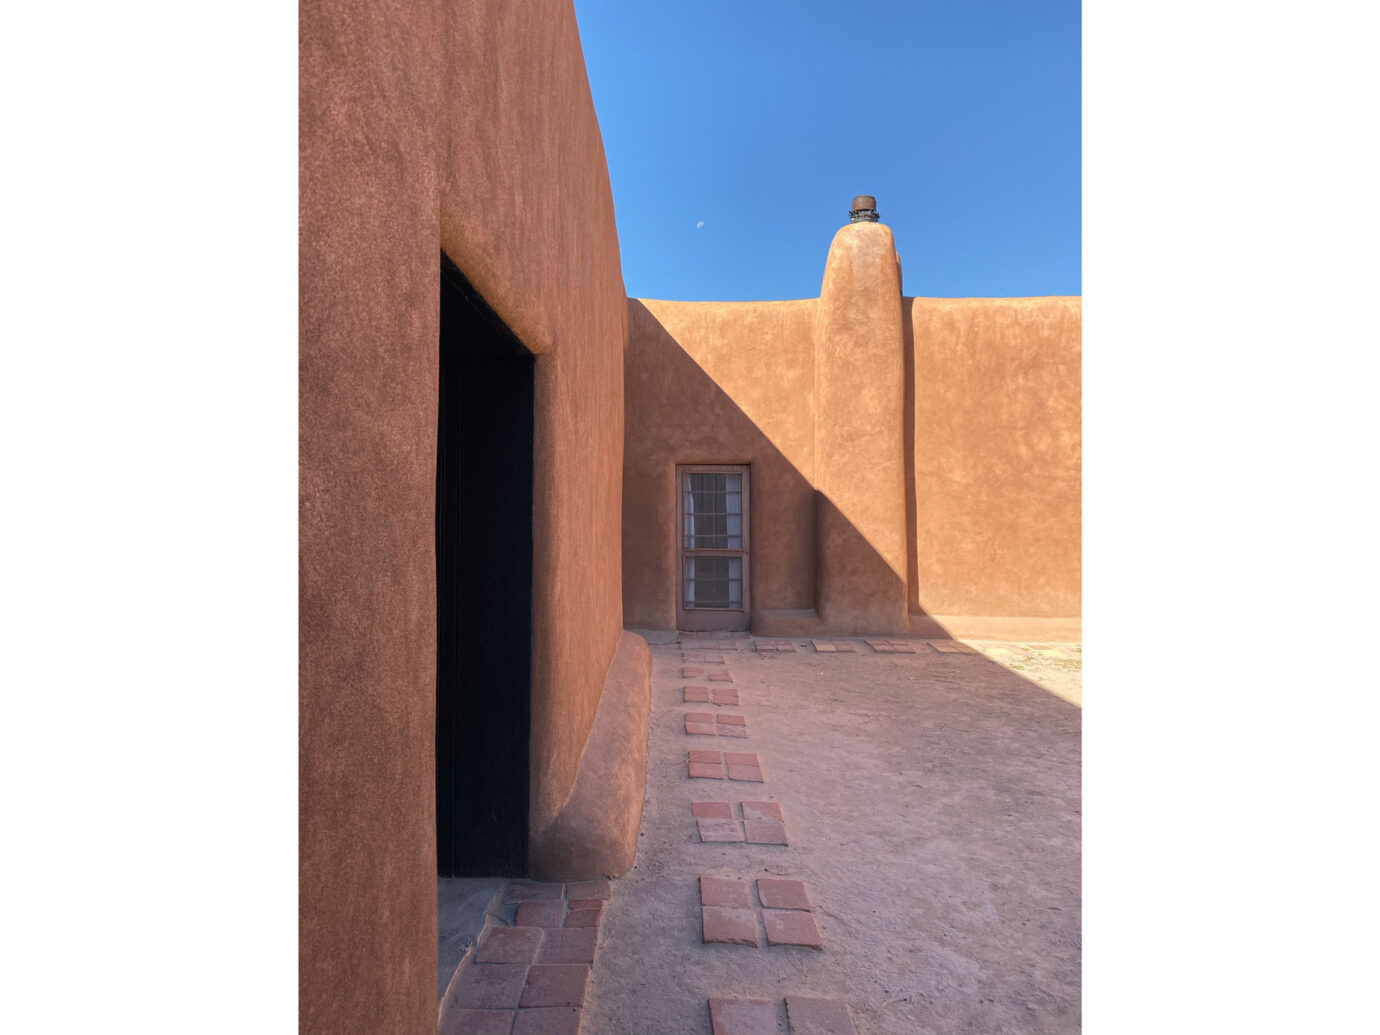 Georgia O'Keeffe's home in Abiquiu, New Mexico